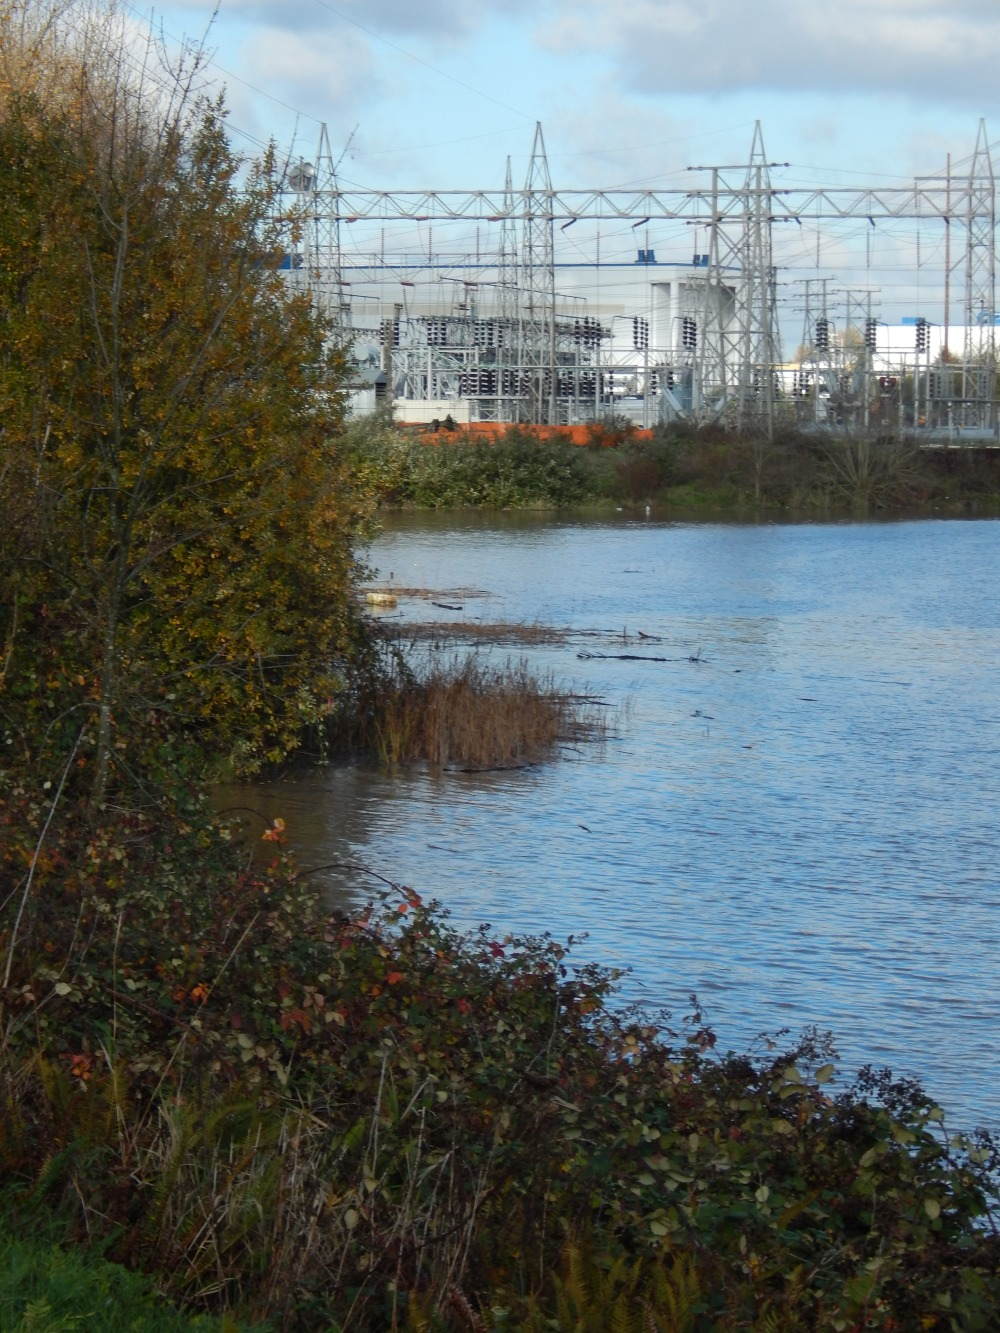 Electrified on the Duwamish River